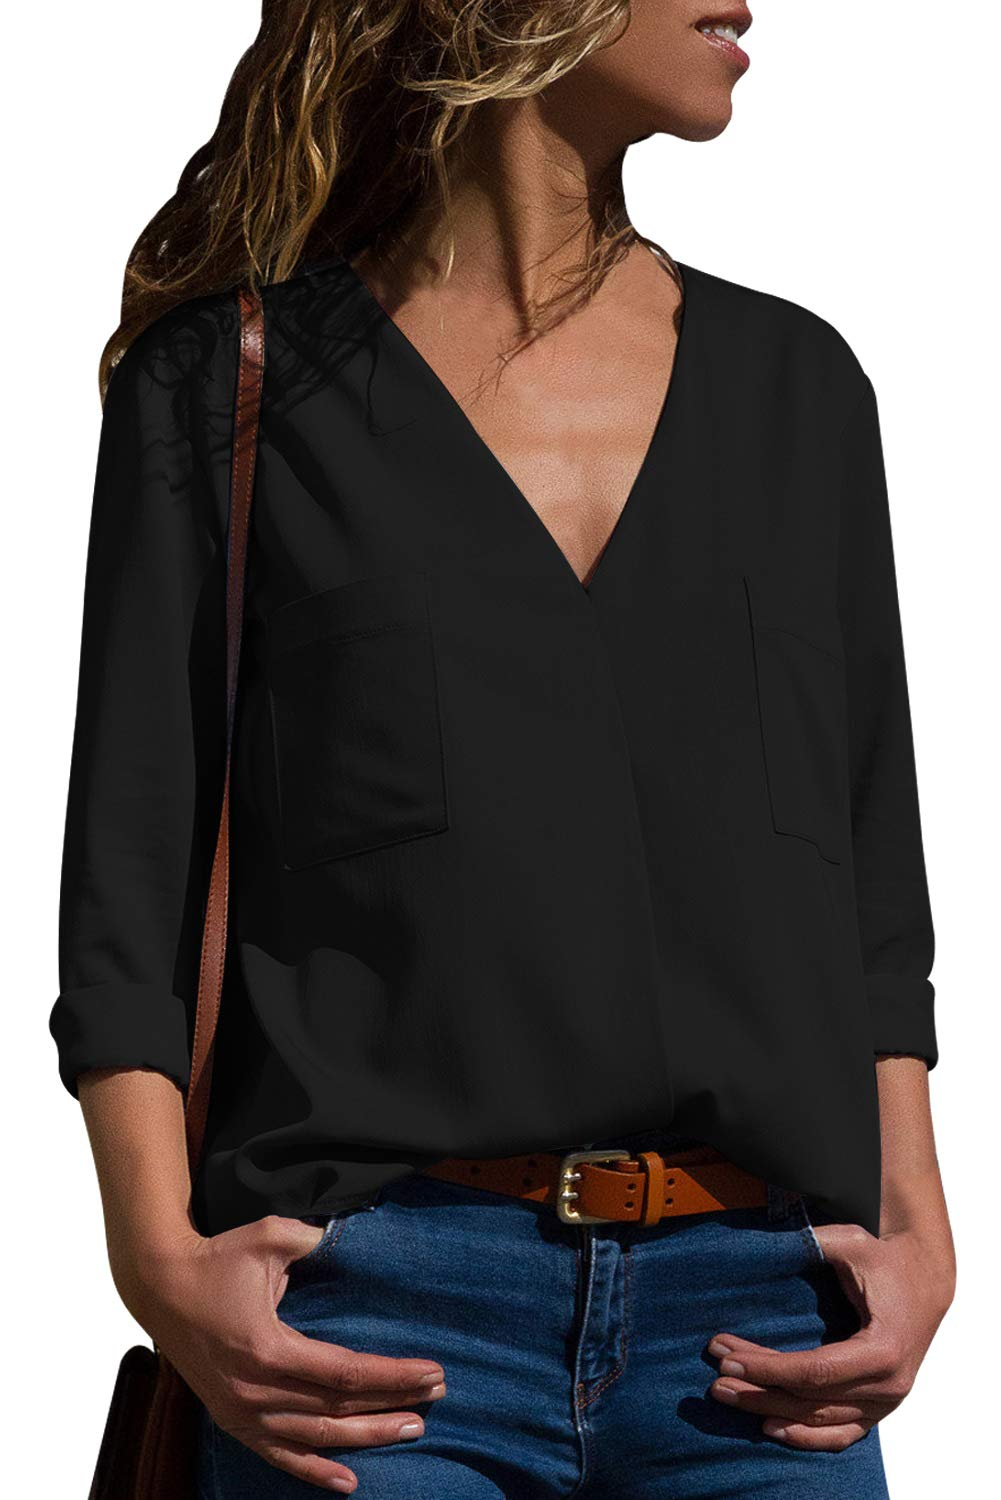 Asyoly Women Casual Pockets V Neck Long Sleeve Loose Fit Basic Blouse T Shirt Tops